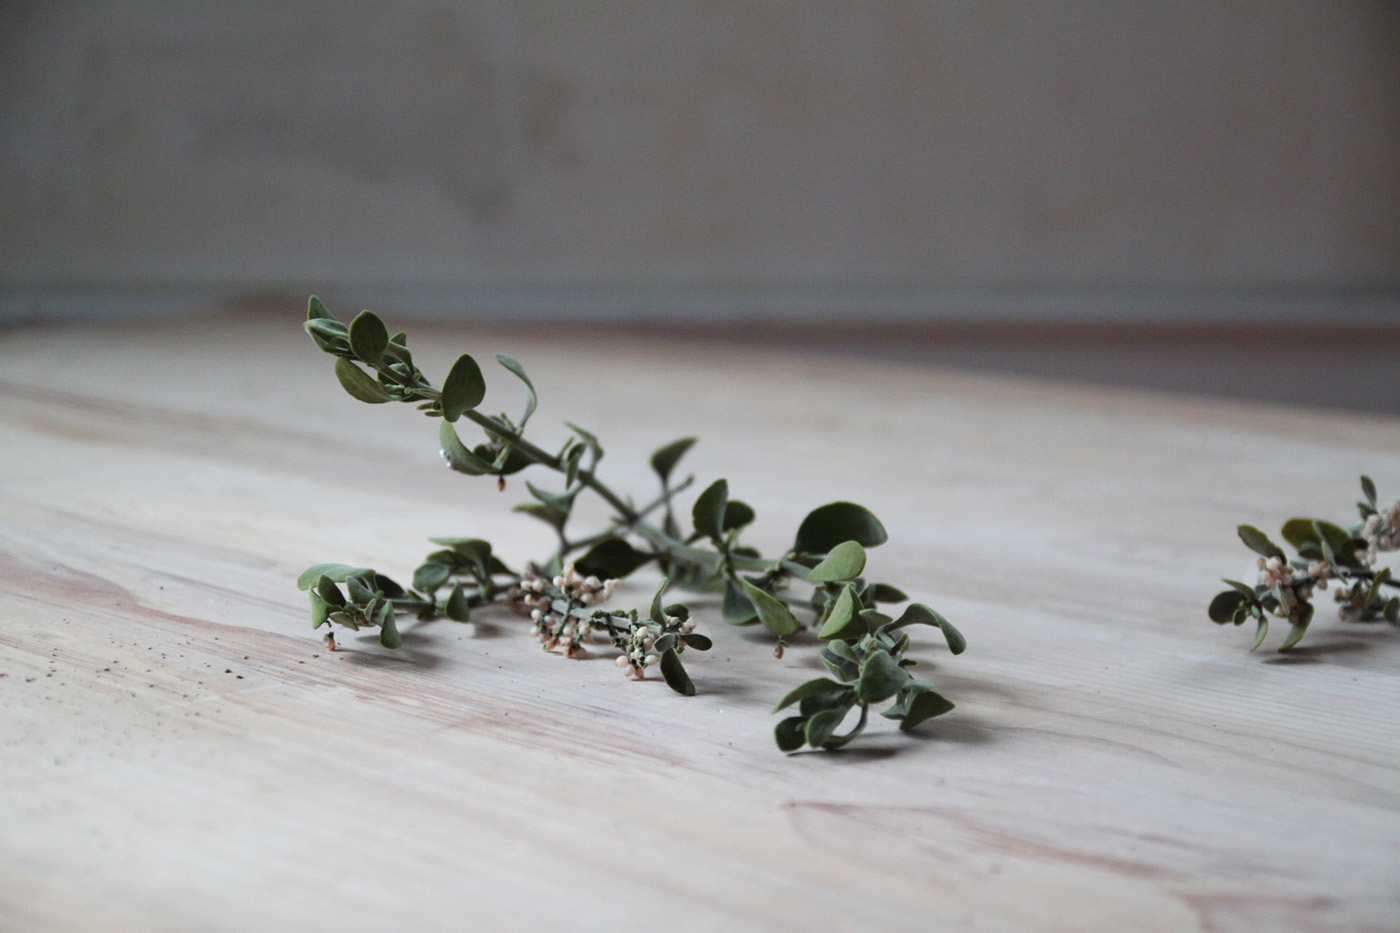 mistletoe and meyer lemon garland, mistletoe, by Justine Hand for Remodelista